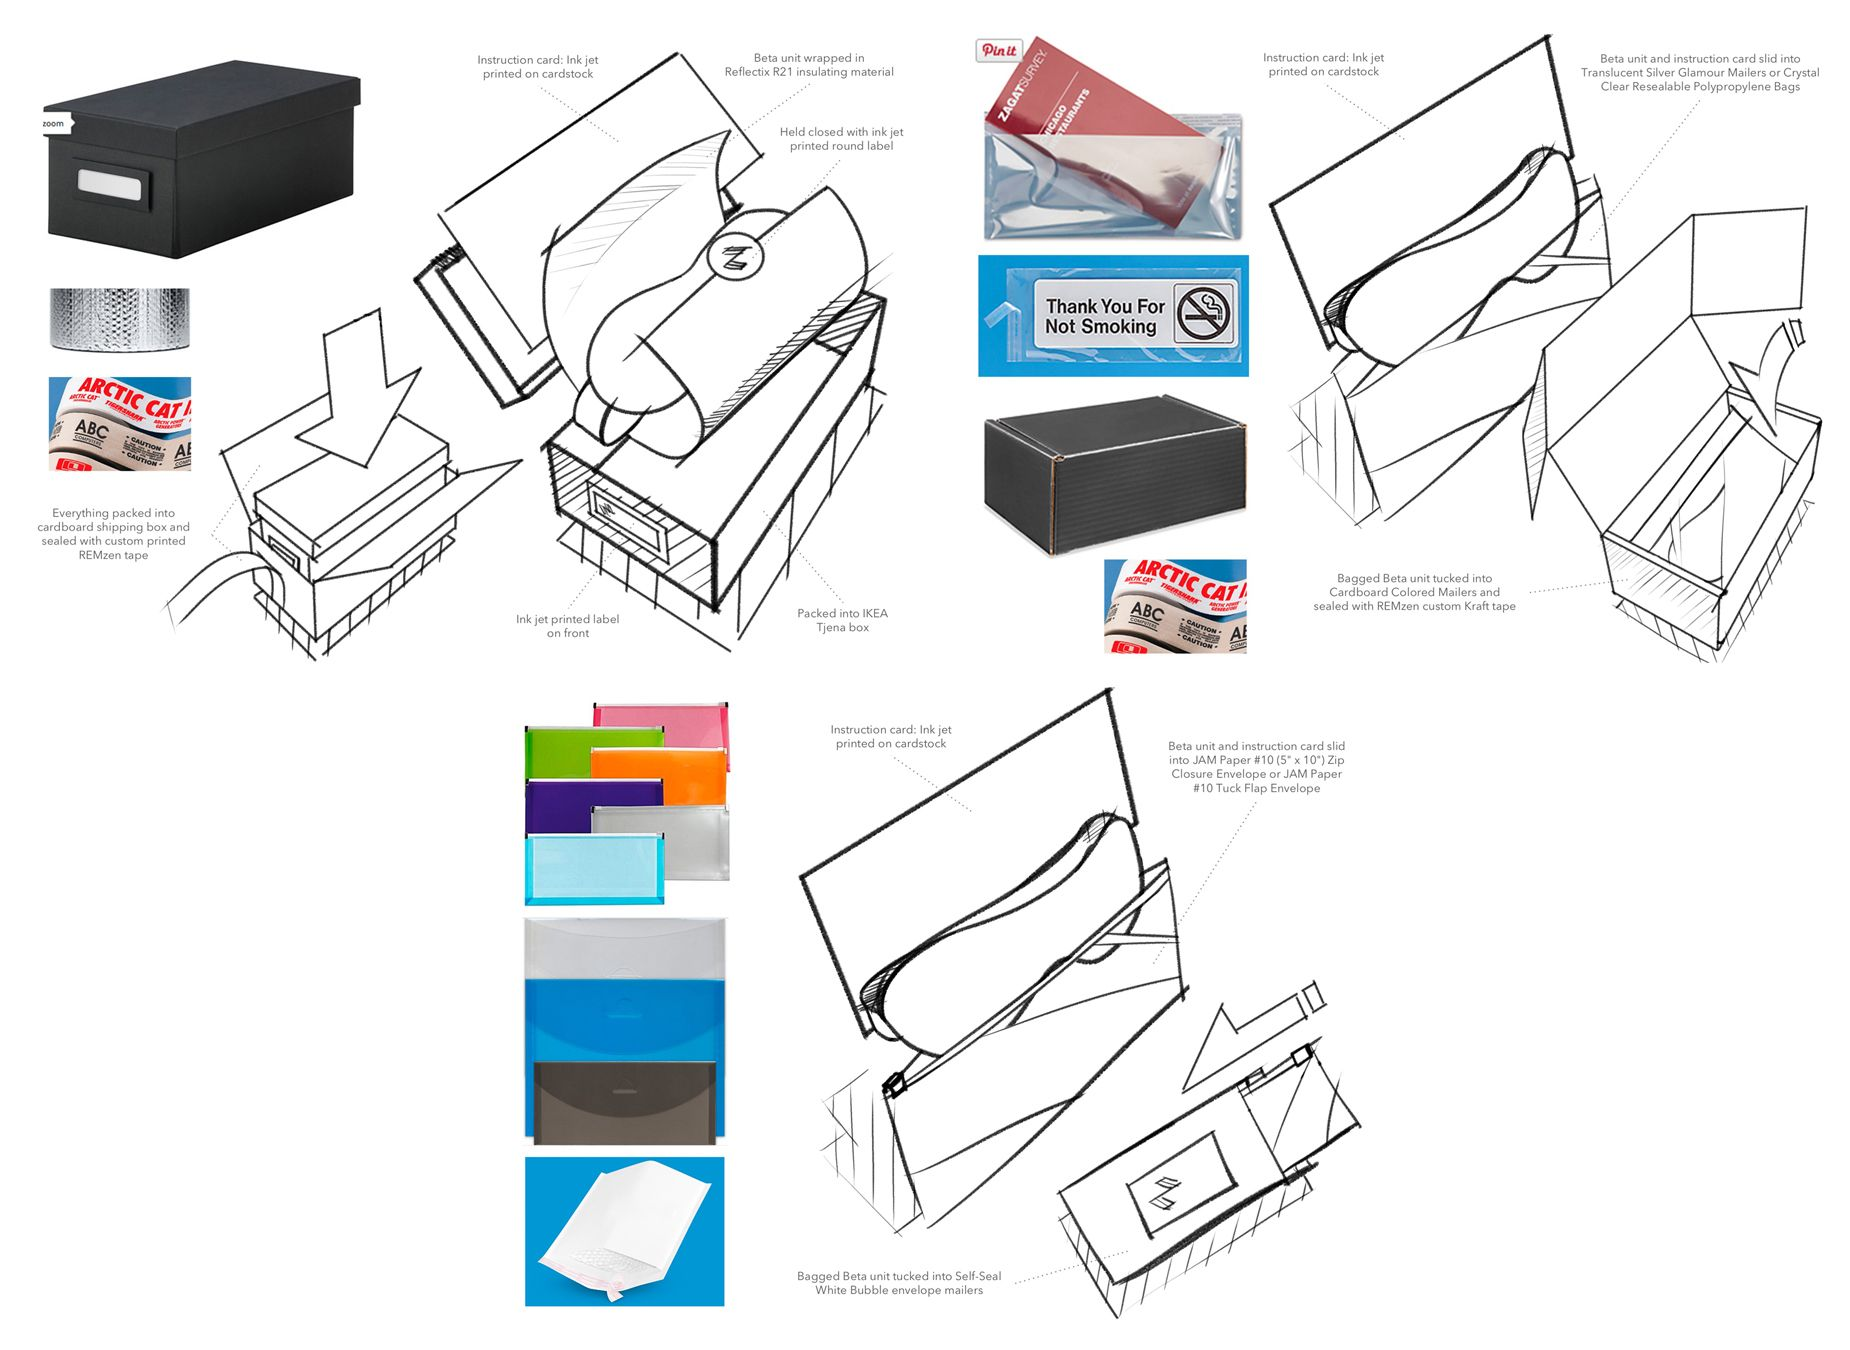 REMzen beta packaging concepts.  James Owen Design + REMzen  ‪#‎design‬ ‪#‎visual‬ ‪#‎packaging‬ ‪#‎designlife‬ ‪#‎graphics‬ ‪#‎graphicdesign‬ ‪#‎industrialdesign‬ ‪#‎sketching‬ ‪#‎sketches‬ ‪#‎designer‬ ‪#‎technique‬ ‪#‎designsketch‬ ‪#‎sketchoftheday‬ ‪#‎productdesign‬ ‪#‎productdevelopment‬ ‪#‎vision‬ ‪#‎concept‬ ‪#‎minimal‬ ‪#‎minimalism‬ ‪#‎artdirection‬